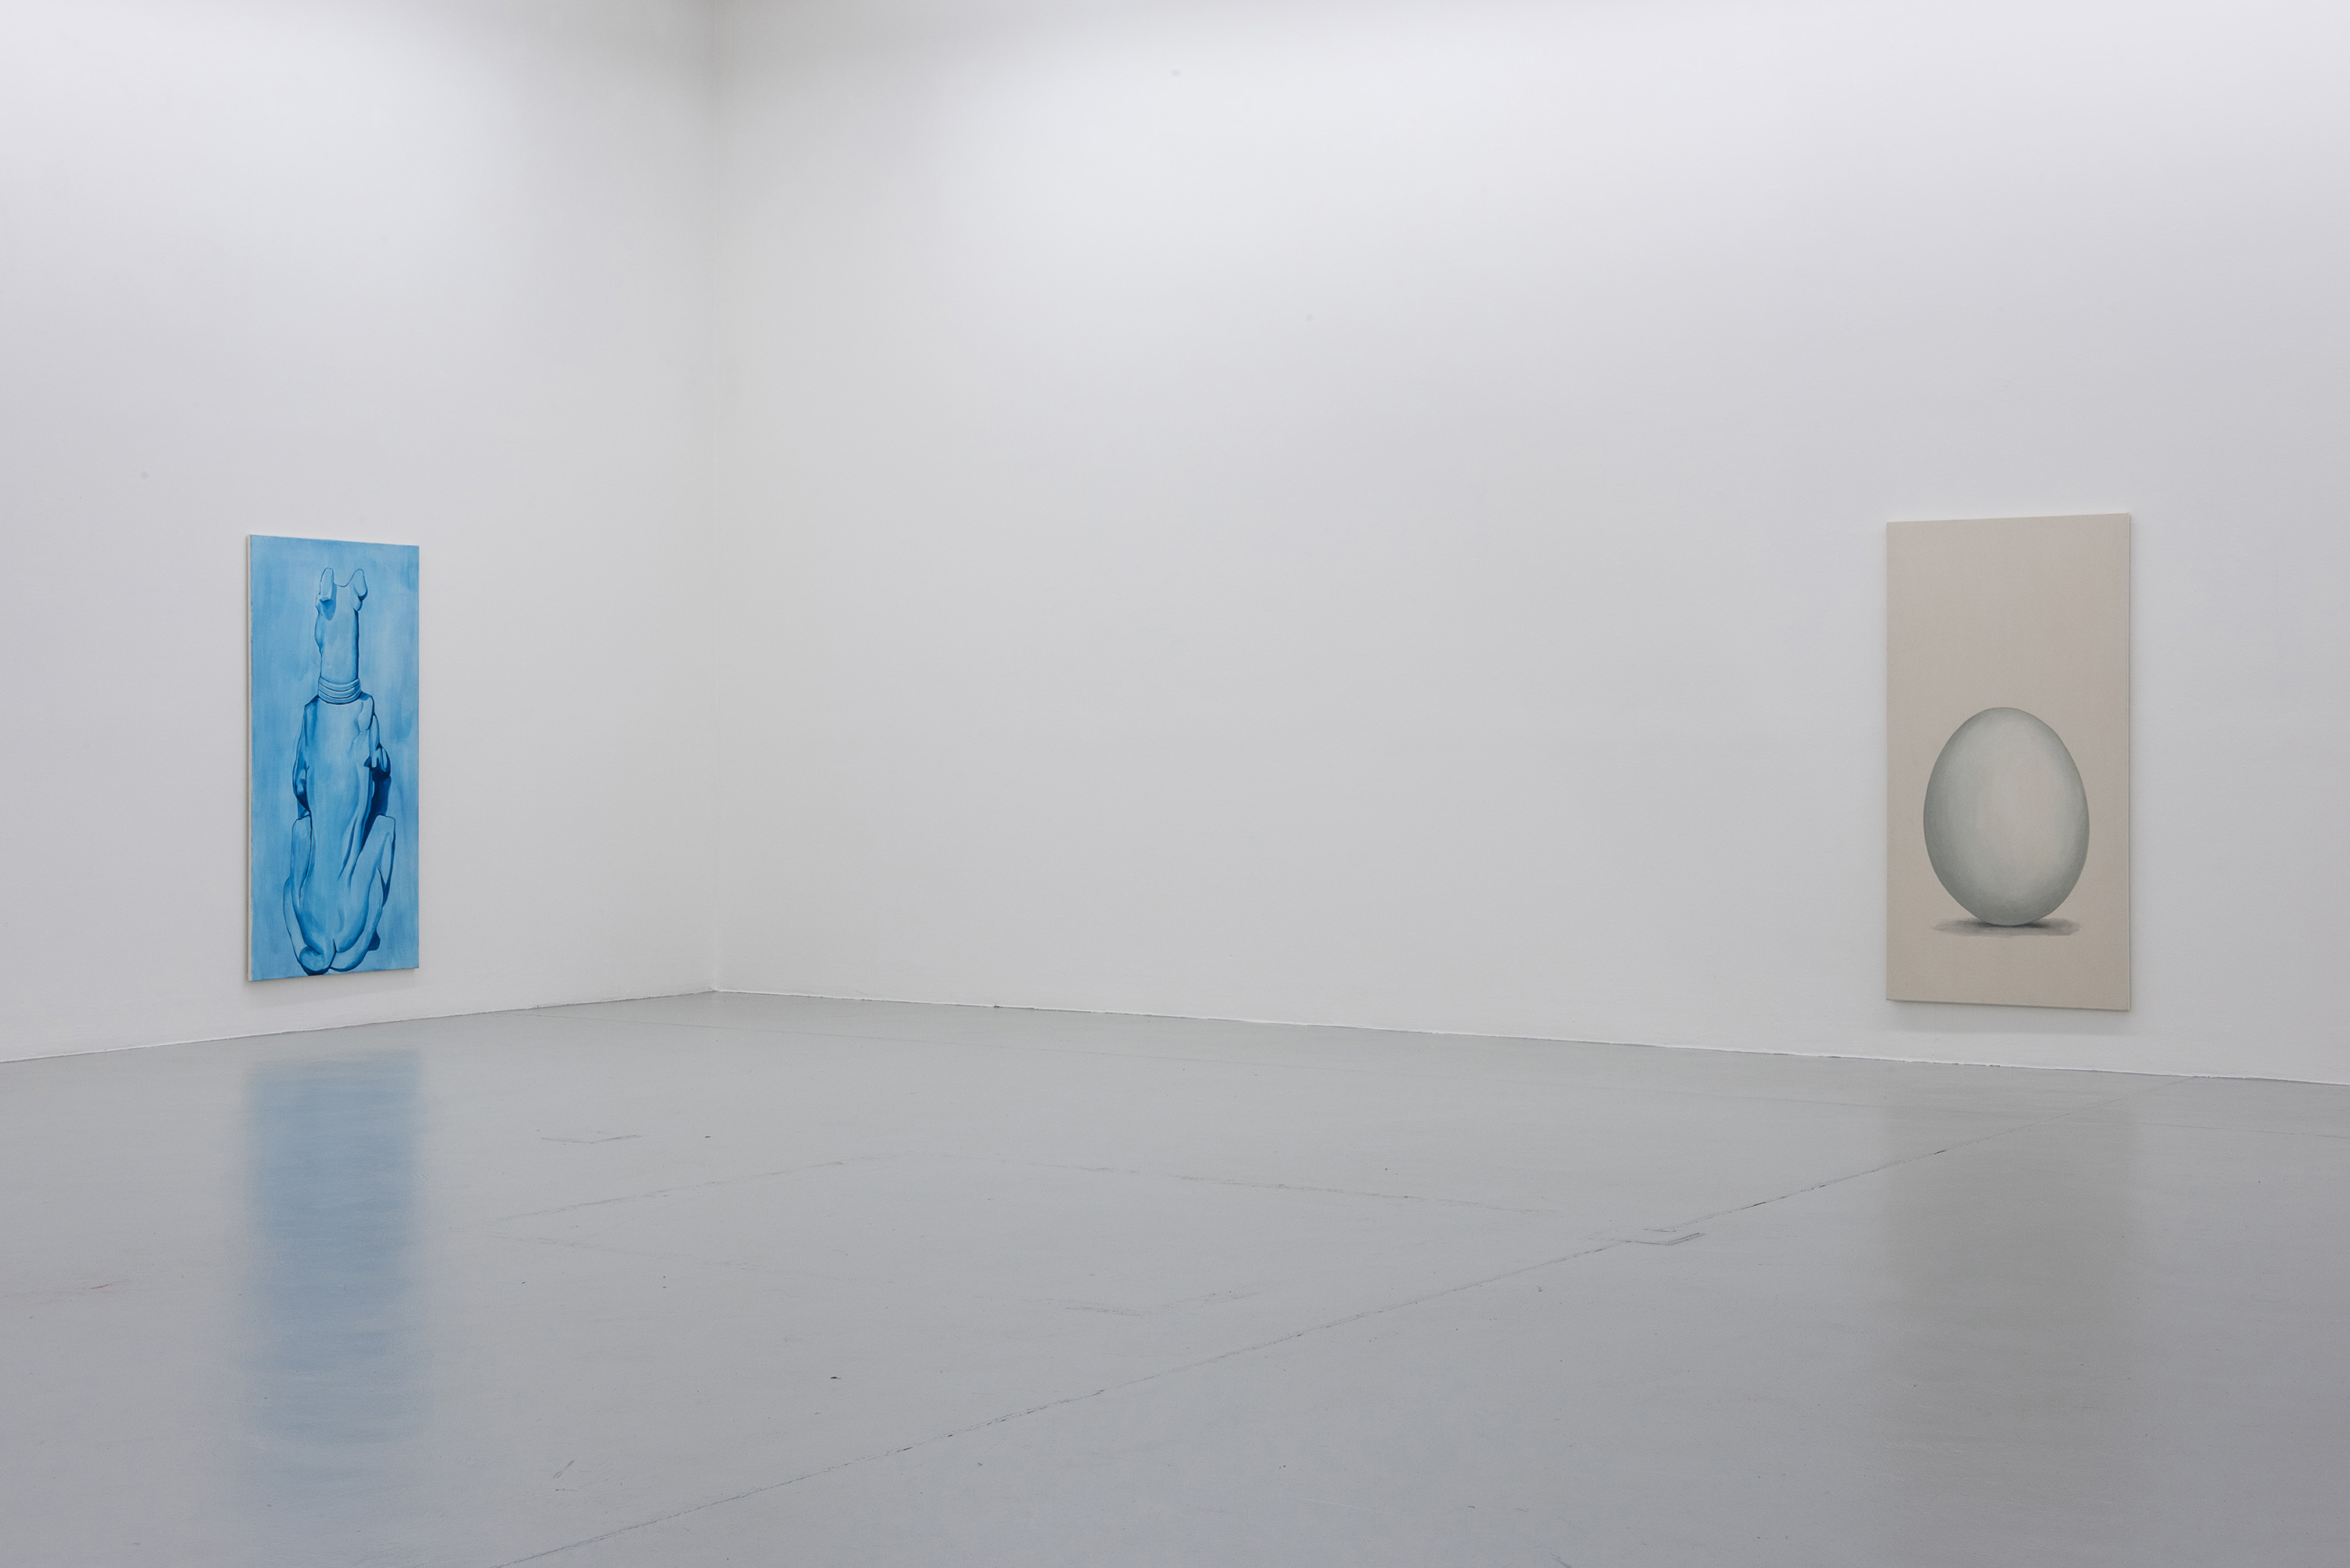 7 - Allison Katz at Kunstverein Fribourg